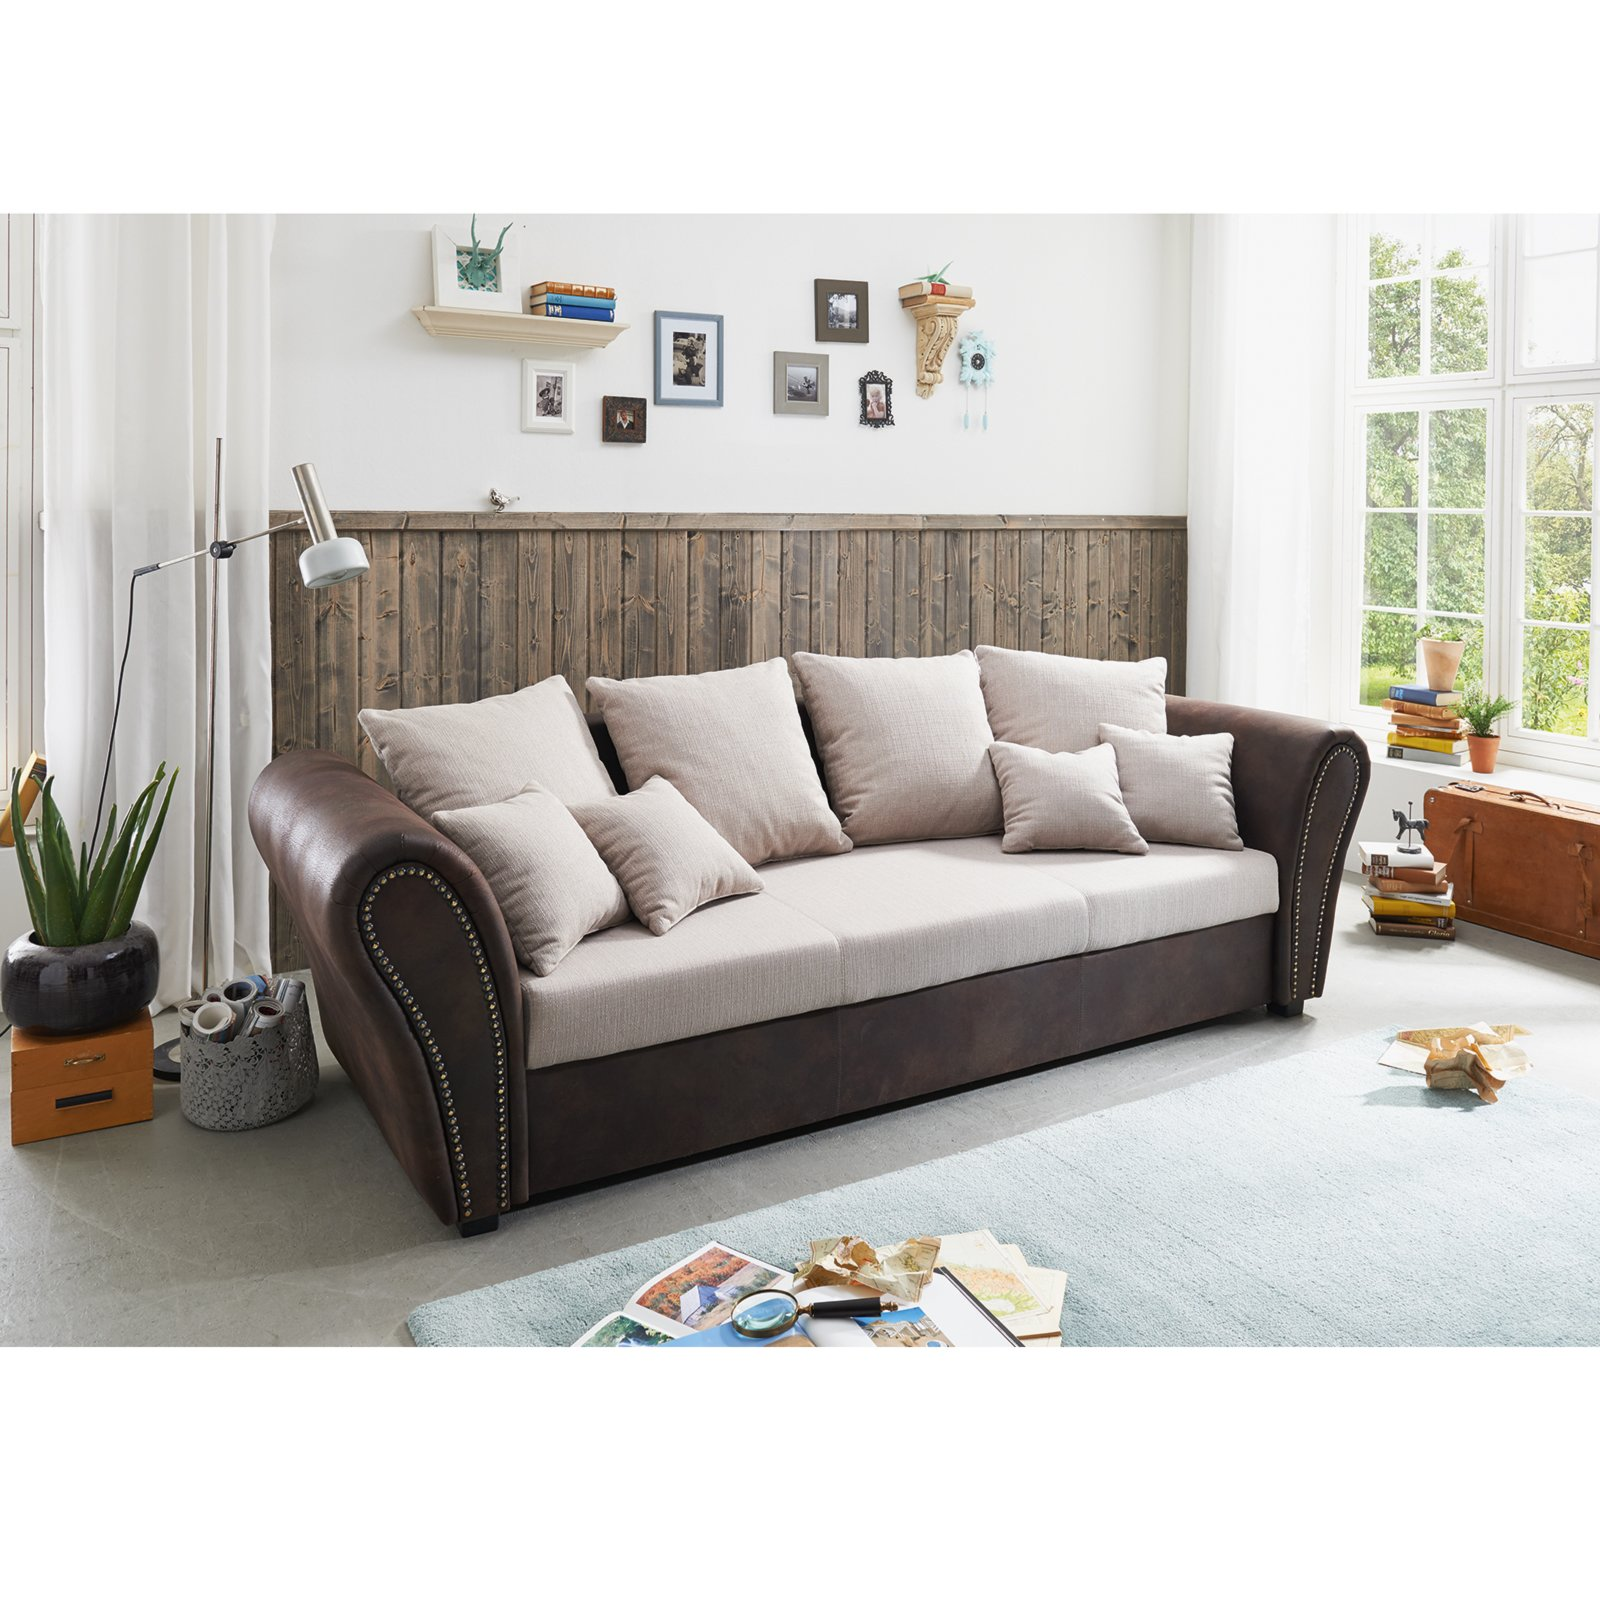 Home Affaire Big Sofa Big Sofa Kissen Roller Big Sofa Wei Grau Inklusive Kissen